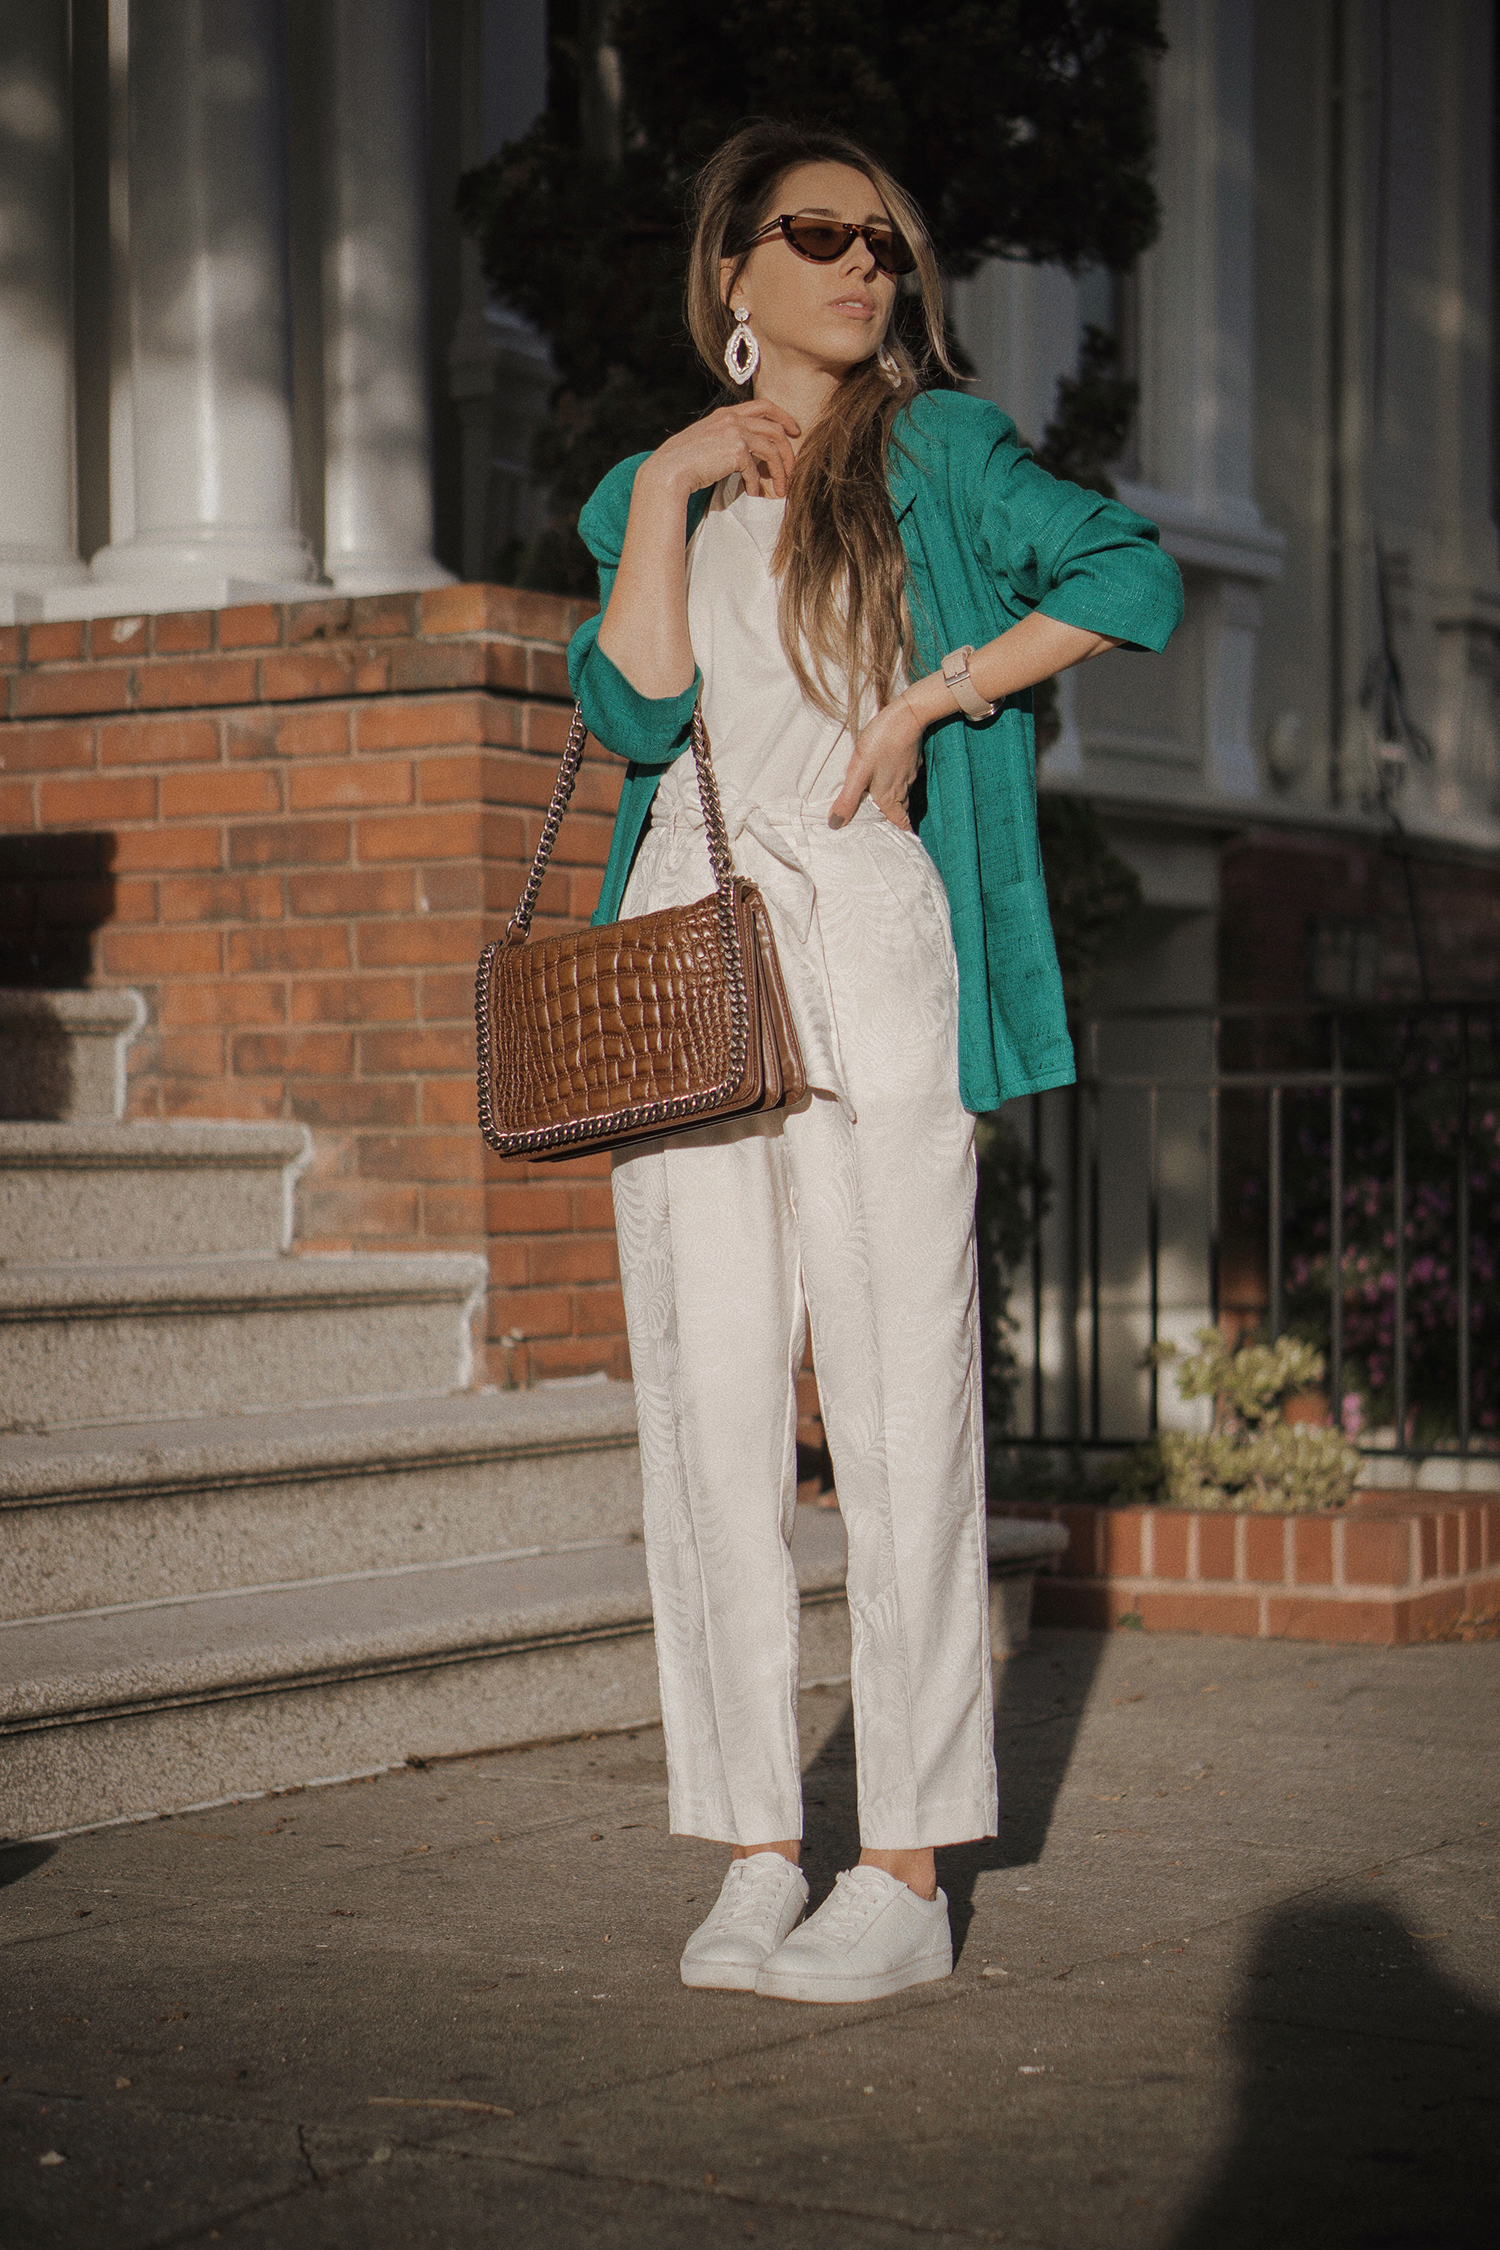 highwaisted_pants_green_jacket_thewhiteocean_lenajuice_08